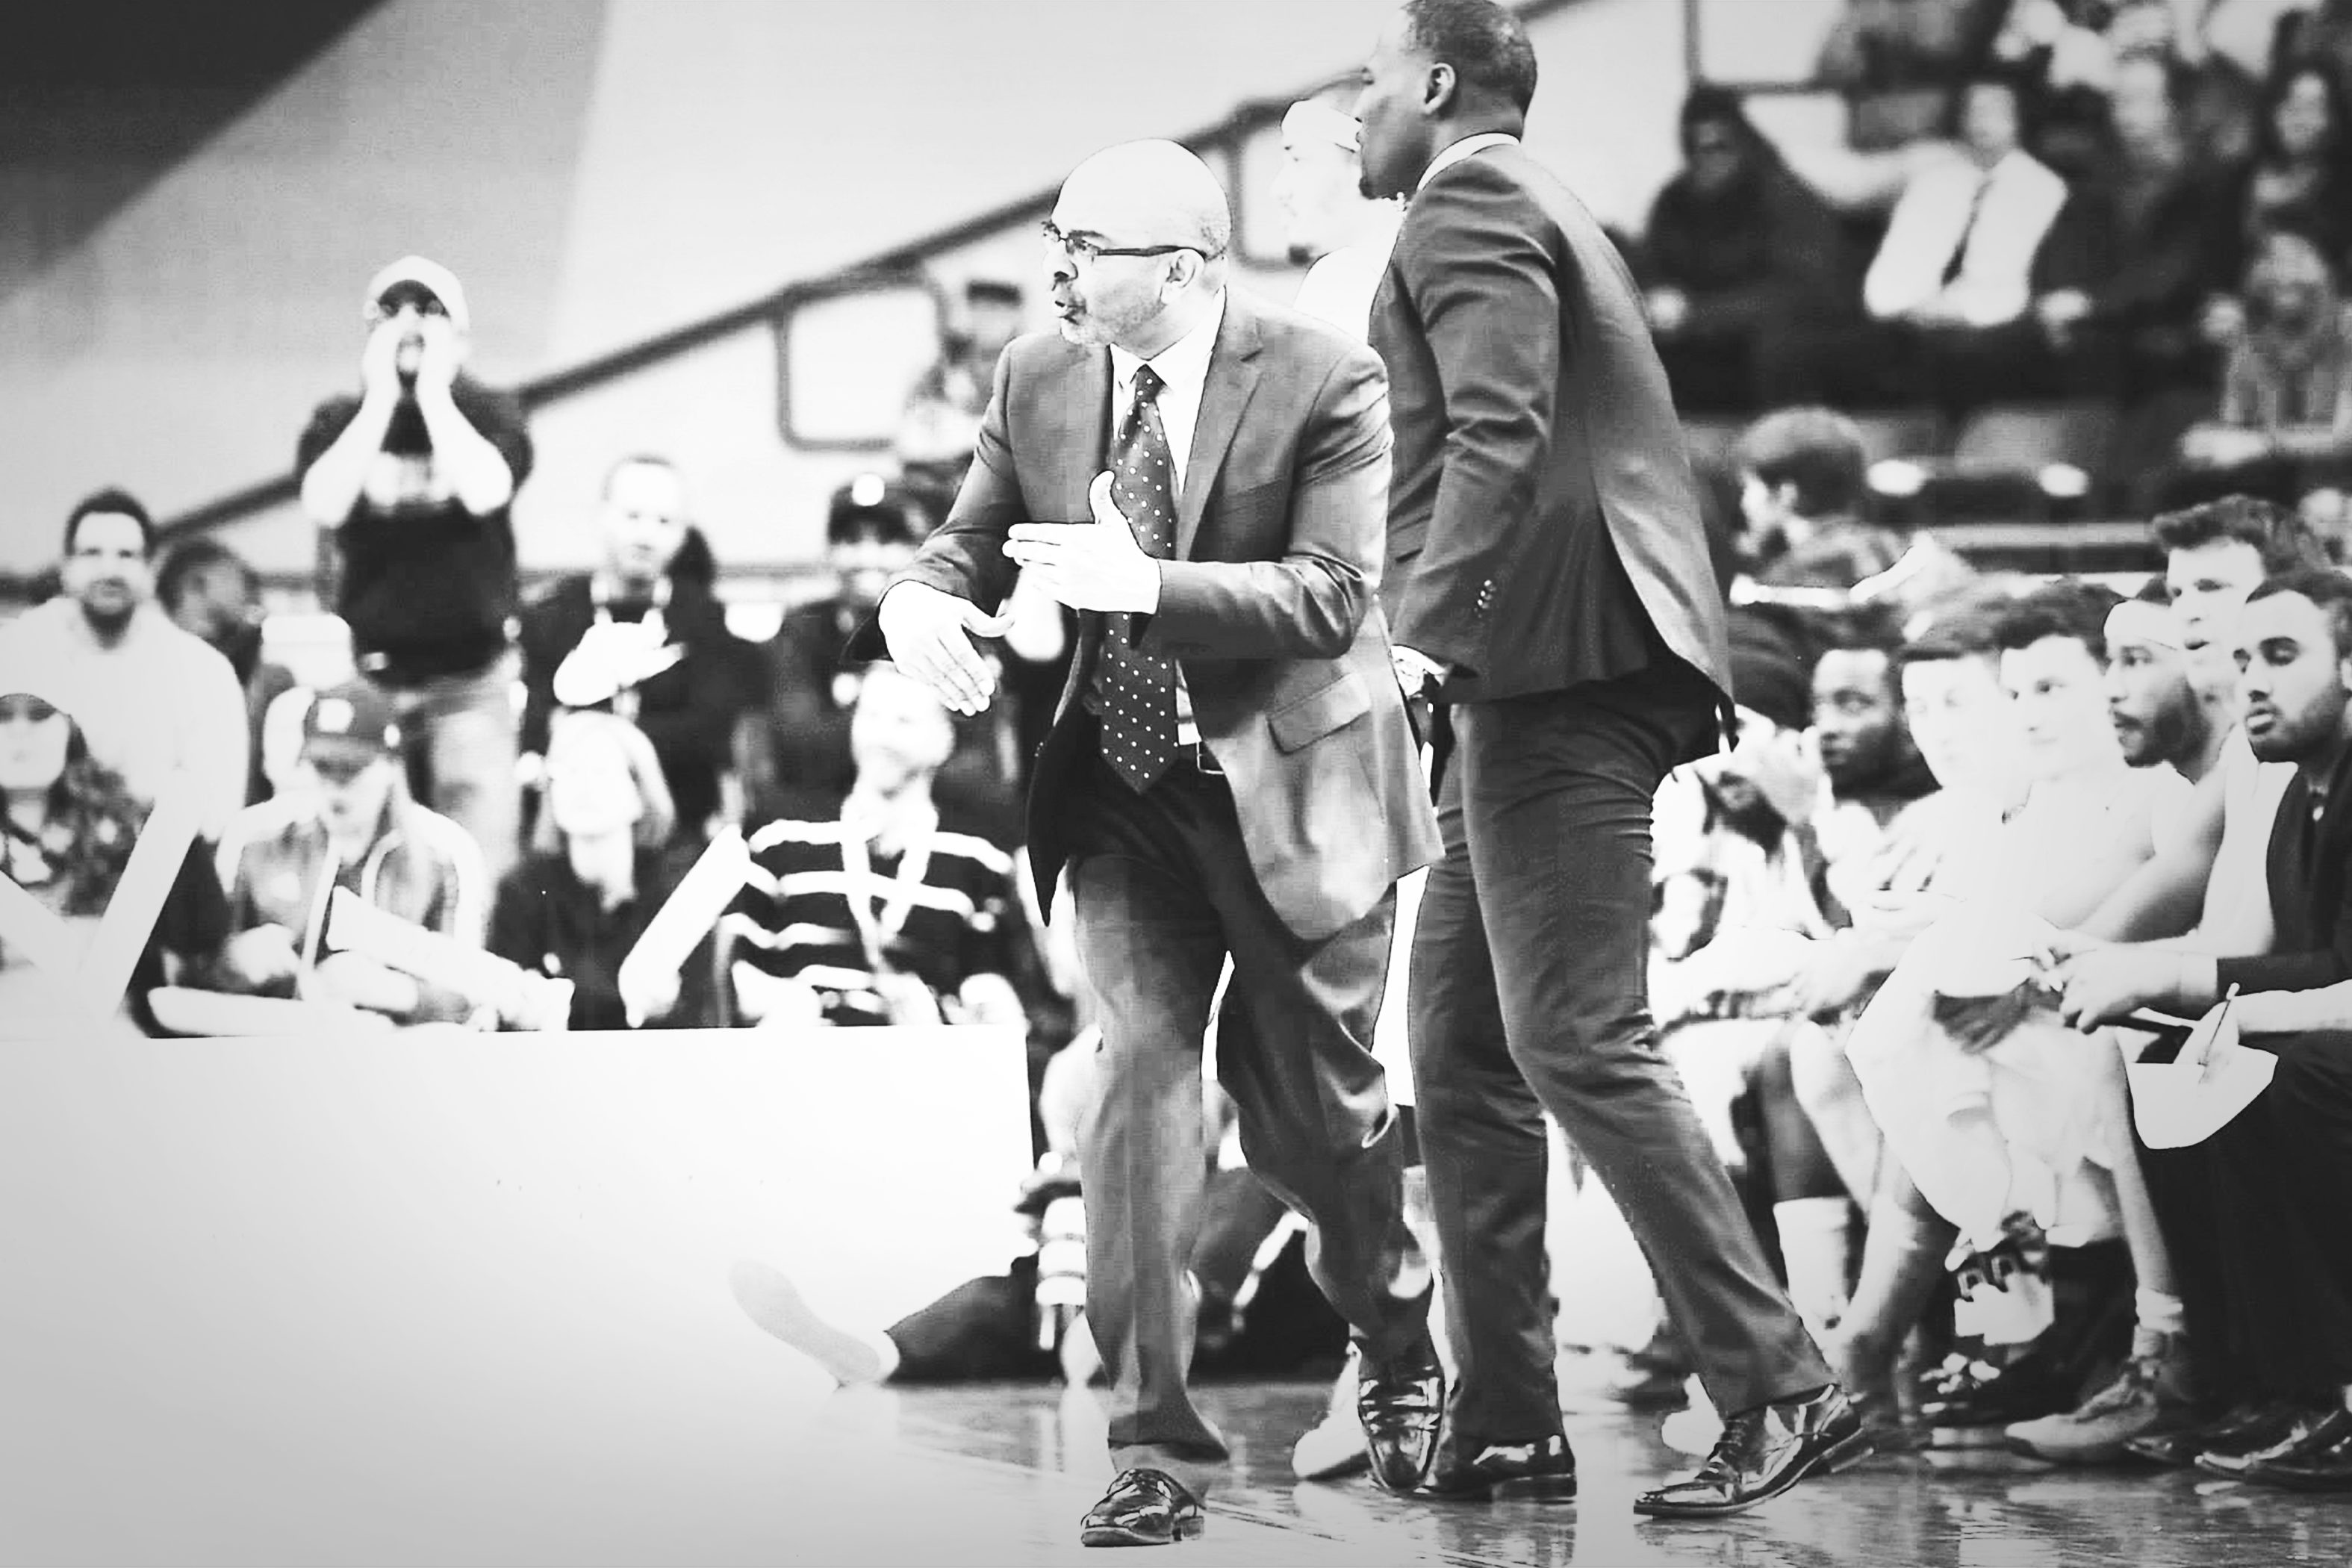 Roy Rana coaching the Rams during the CIS Final 8 during the 2014-2015 season (Courtesy Alex D'Addese)